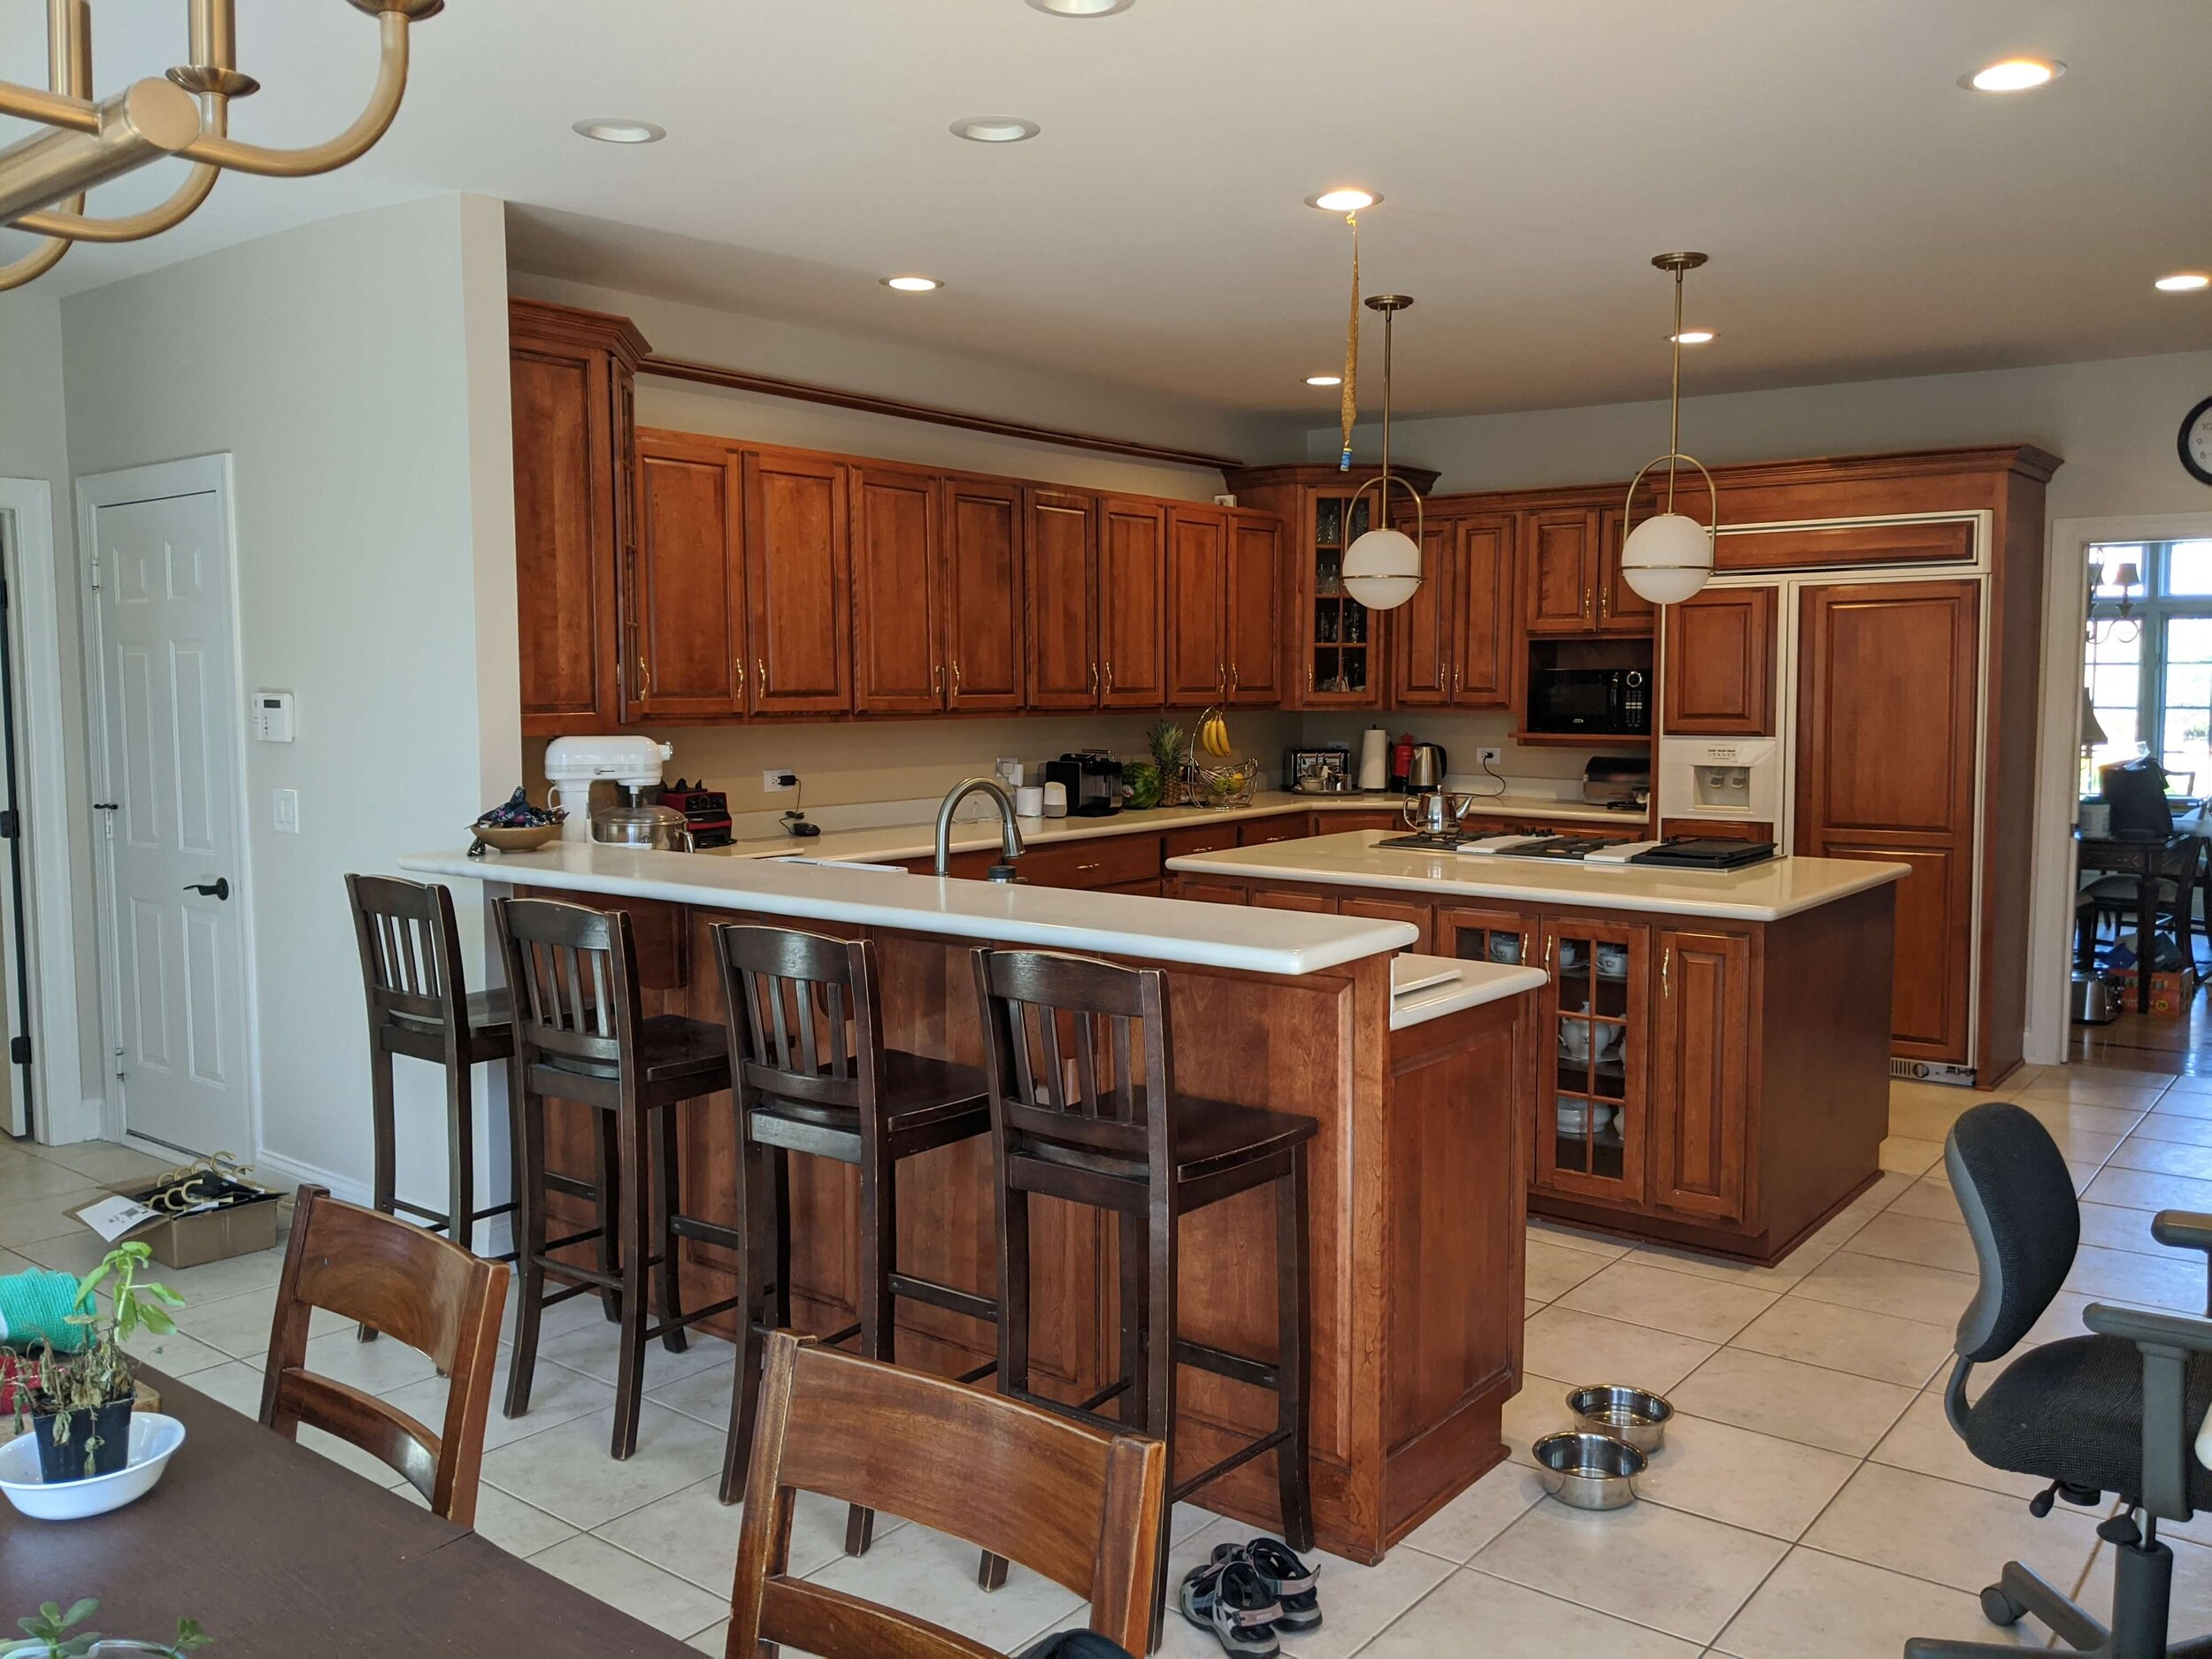 How To Update A Kitchen With Wood Cabinets [Without Painting Them ...